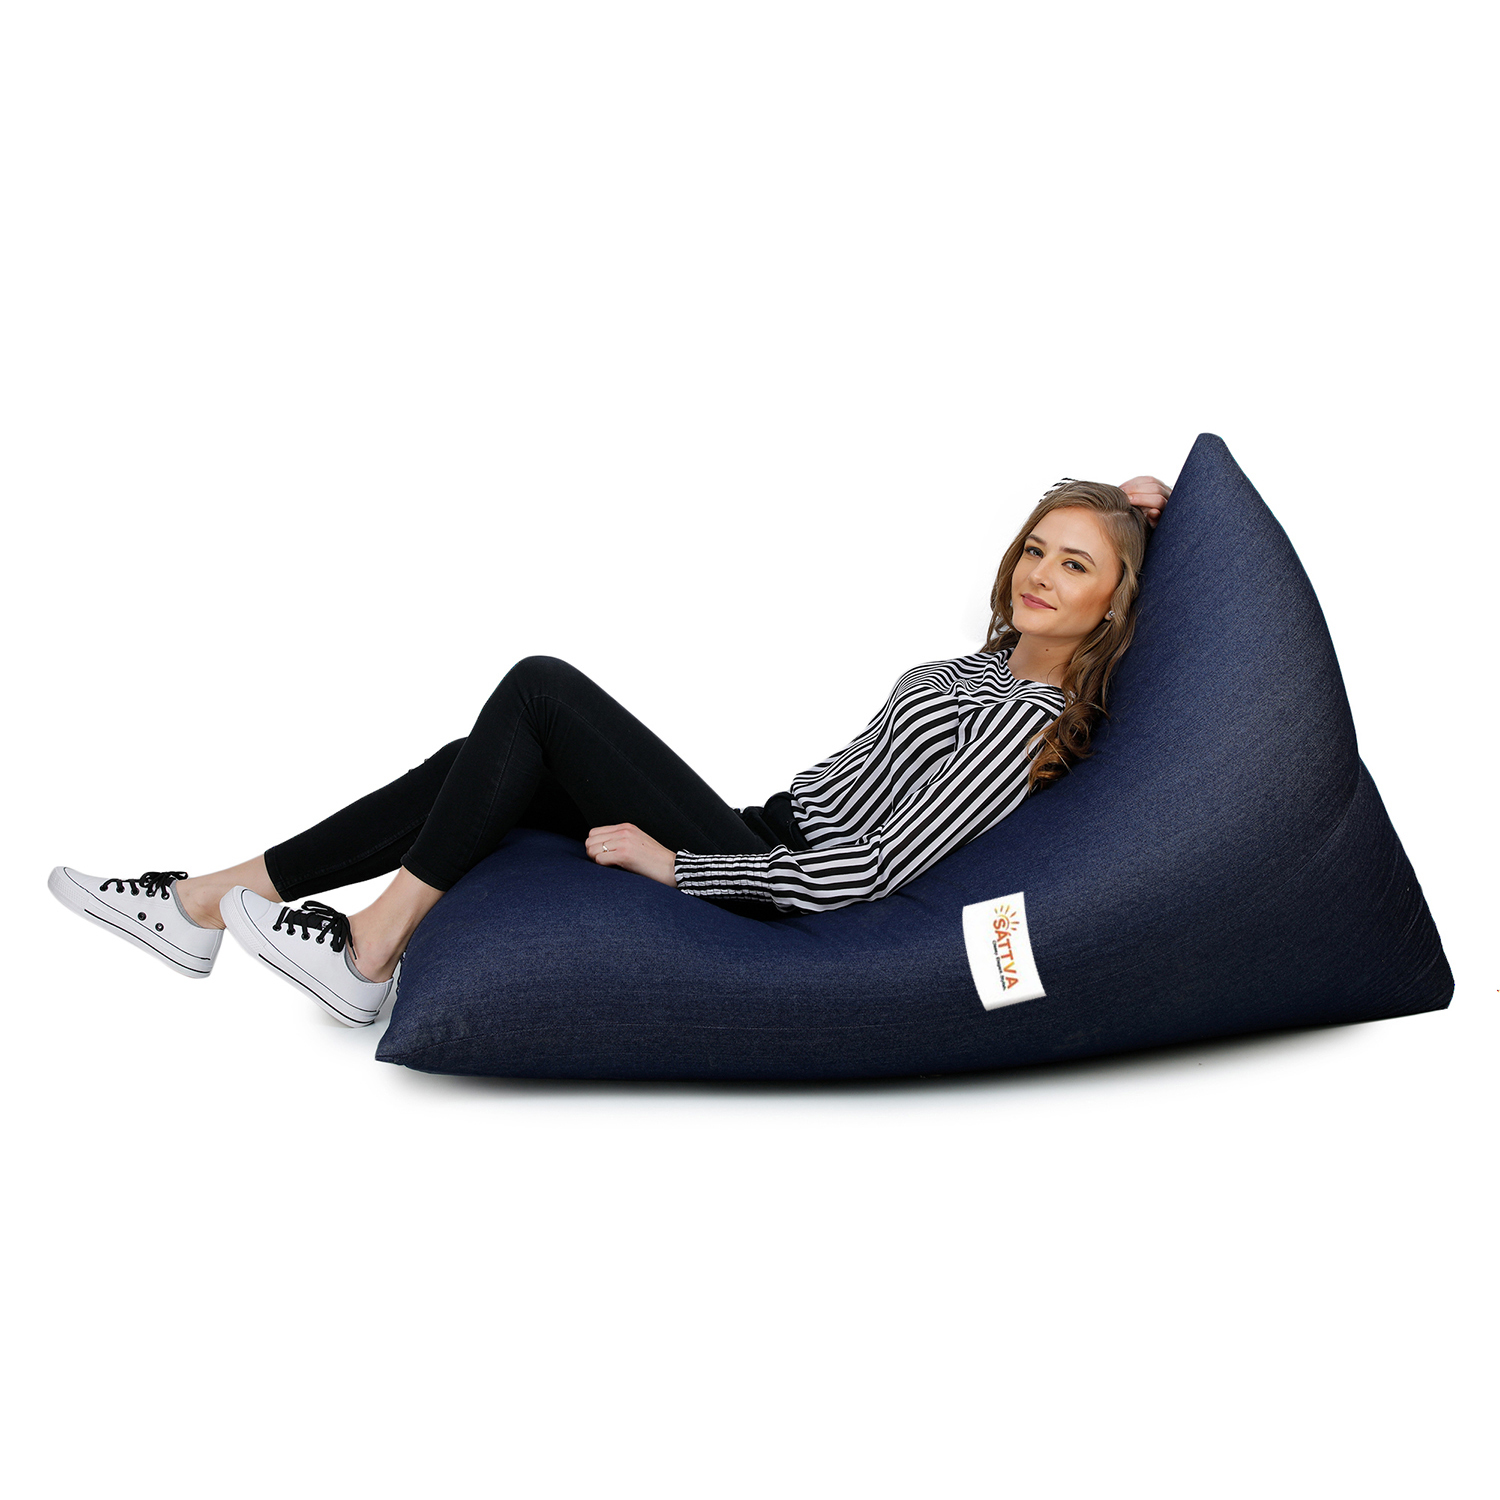 Sattva Triangle Shaped Bean Bag Chair Cover (Without Beans) - Denim